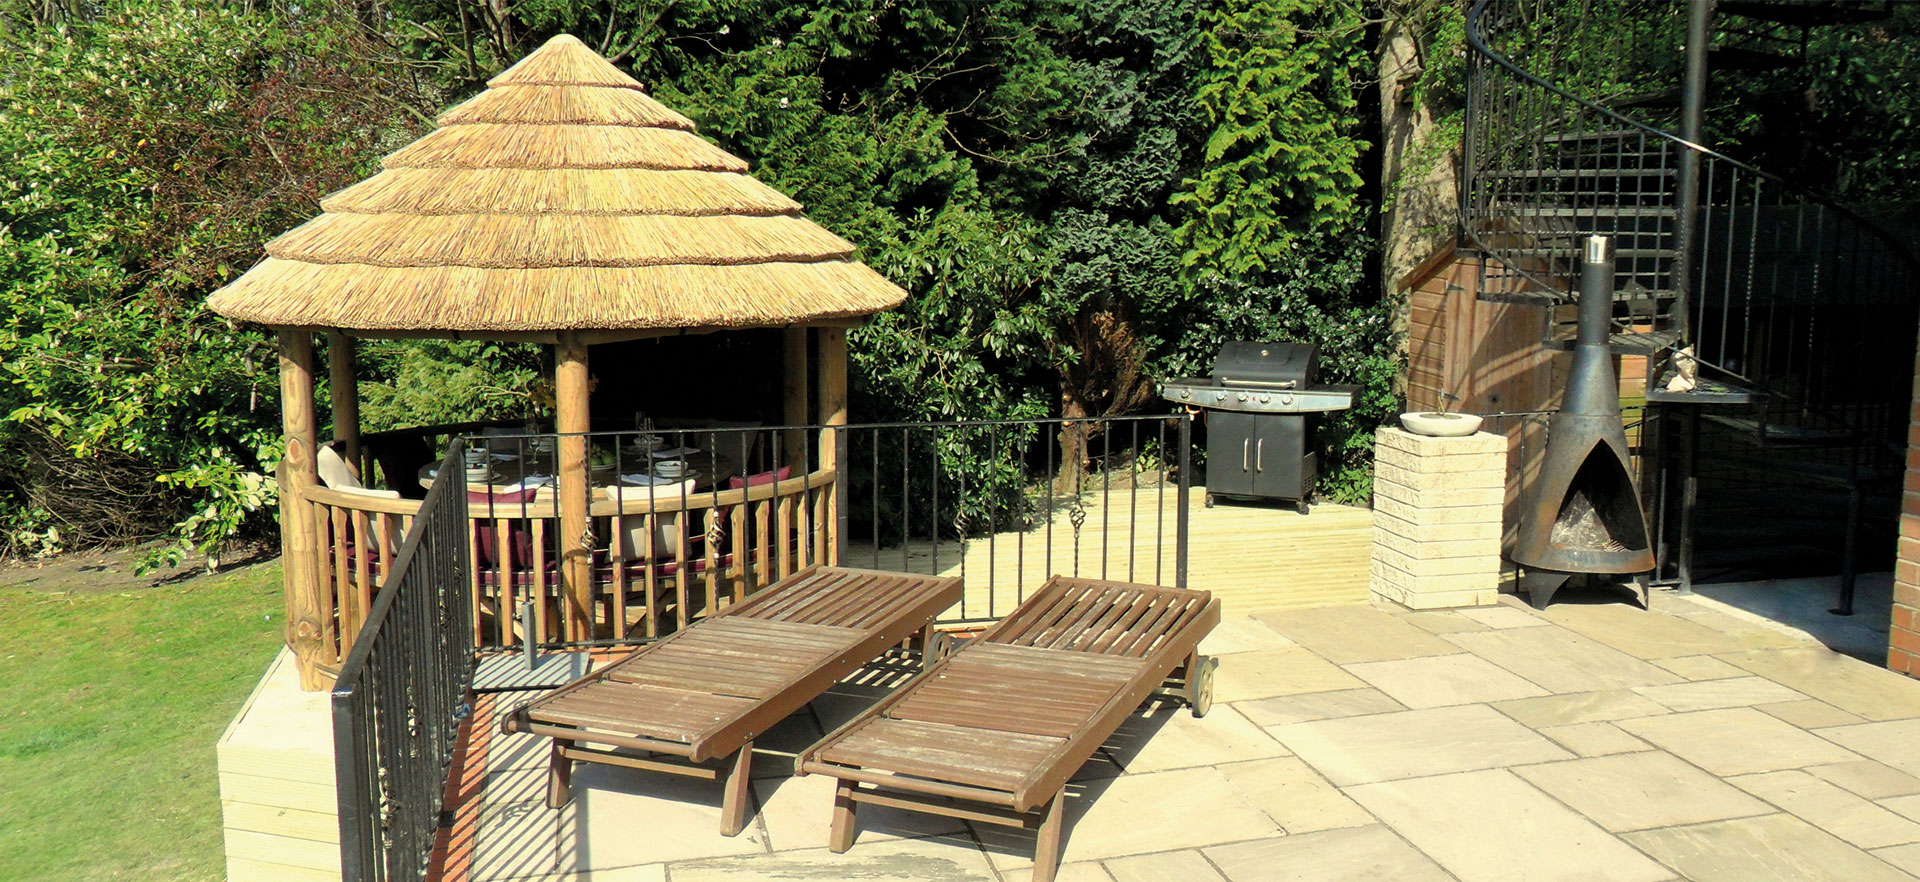 3 metre thatched roof gazebo on decking